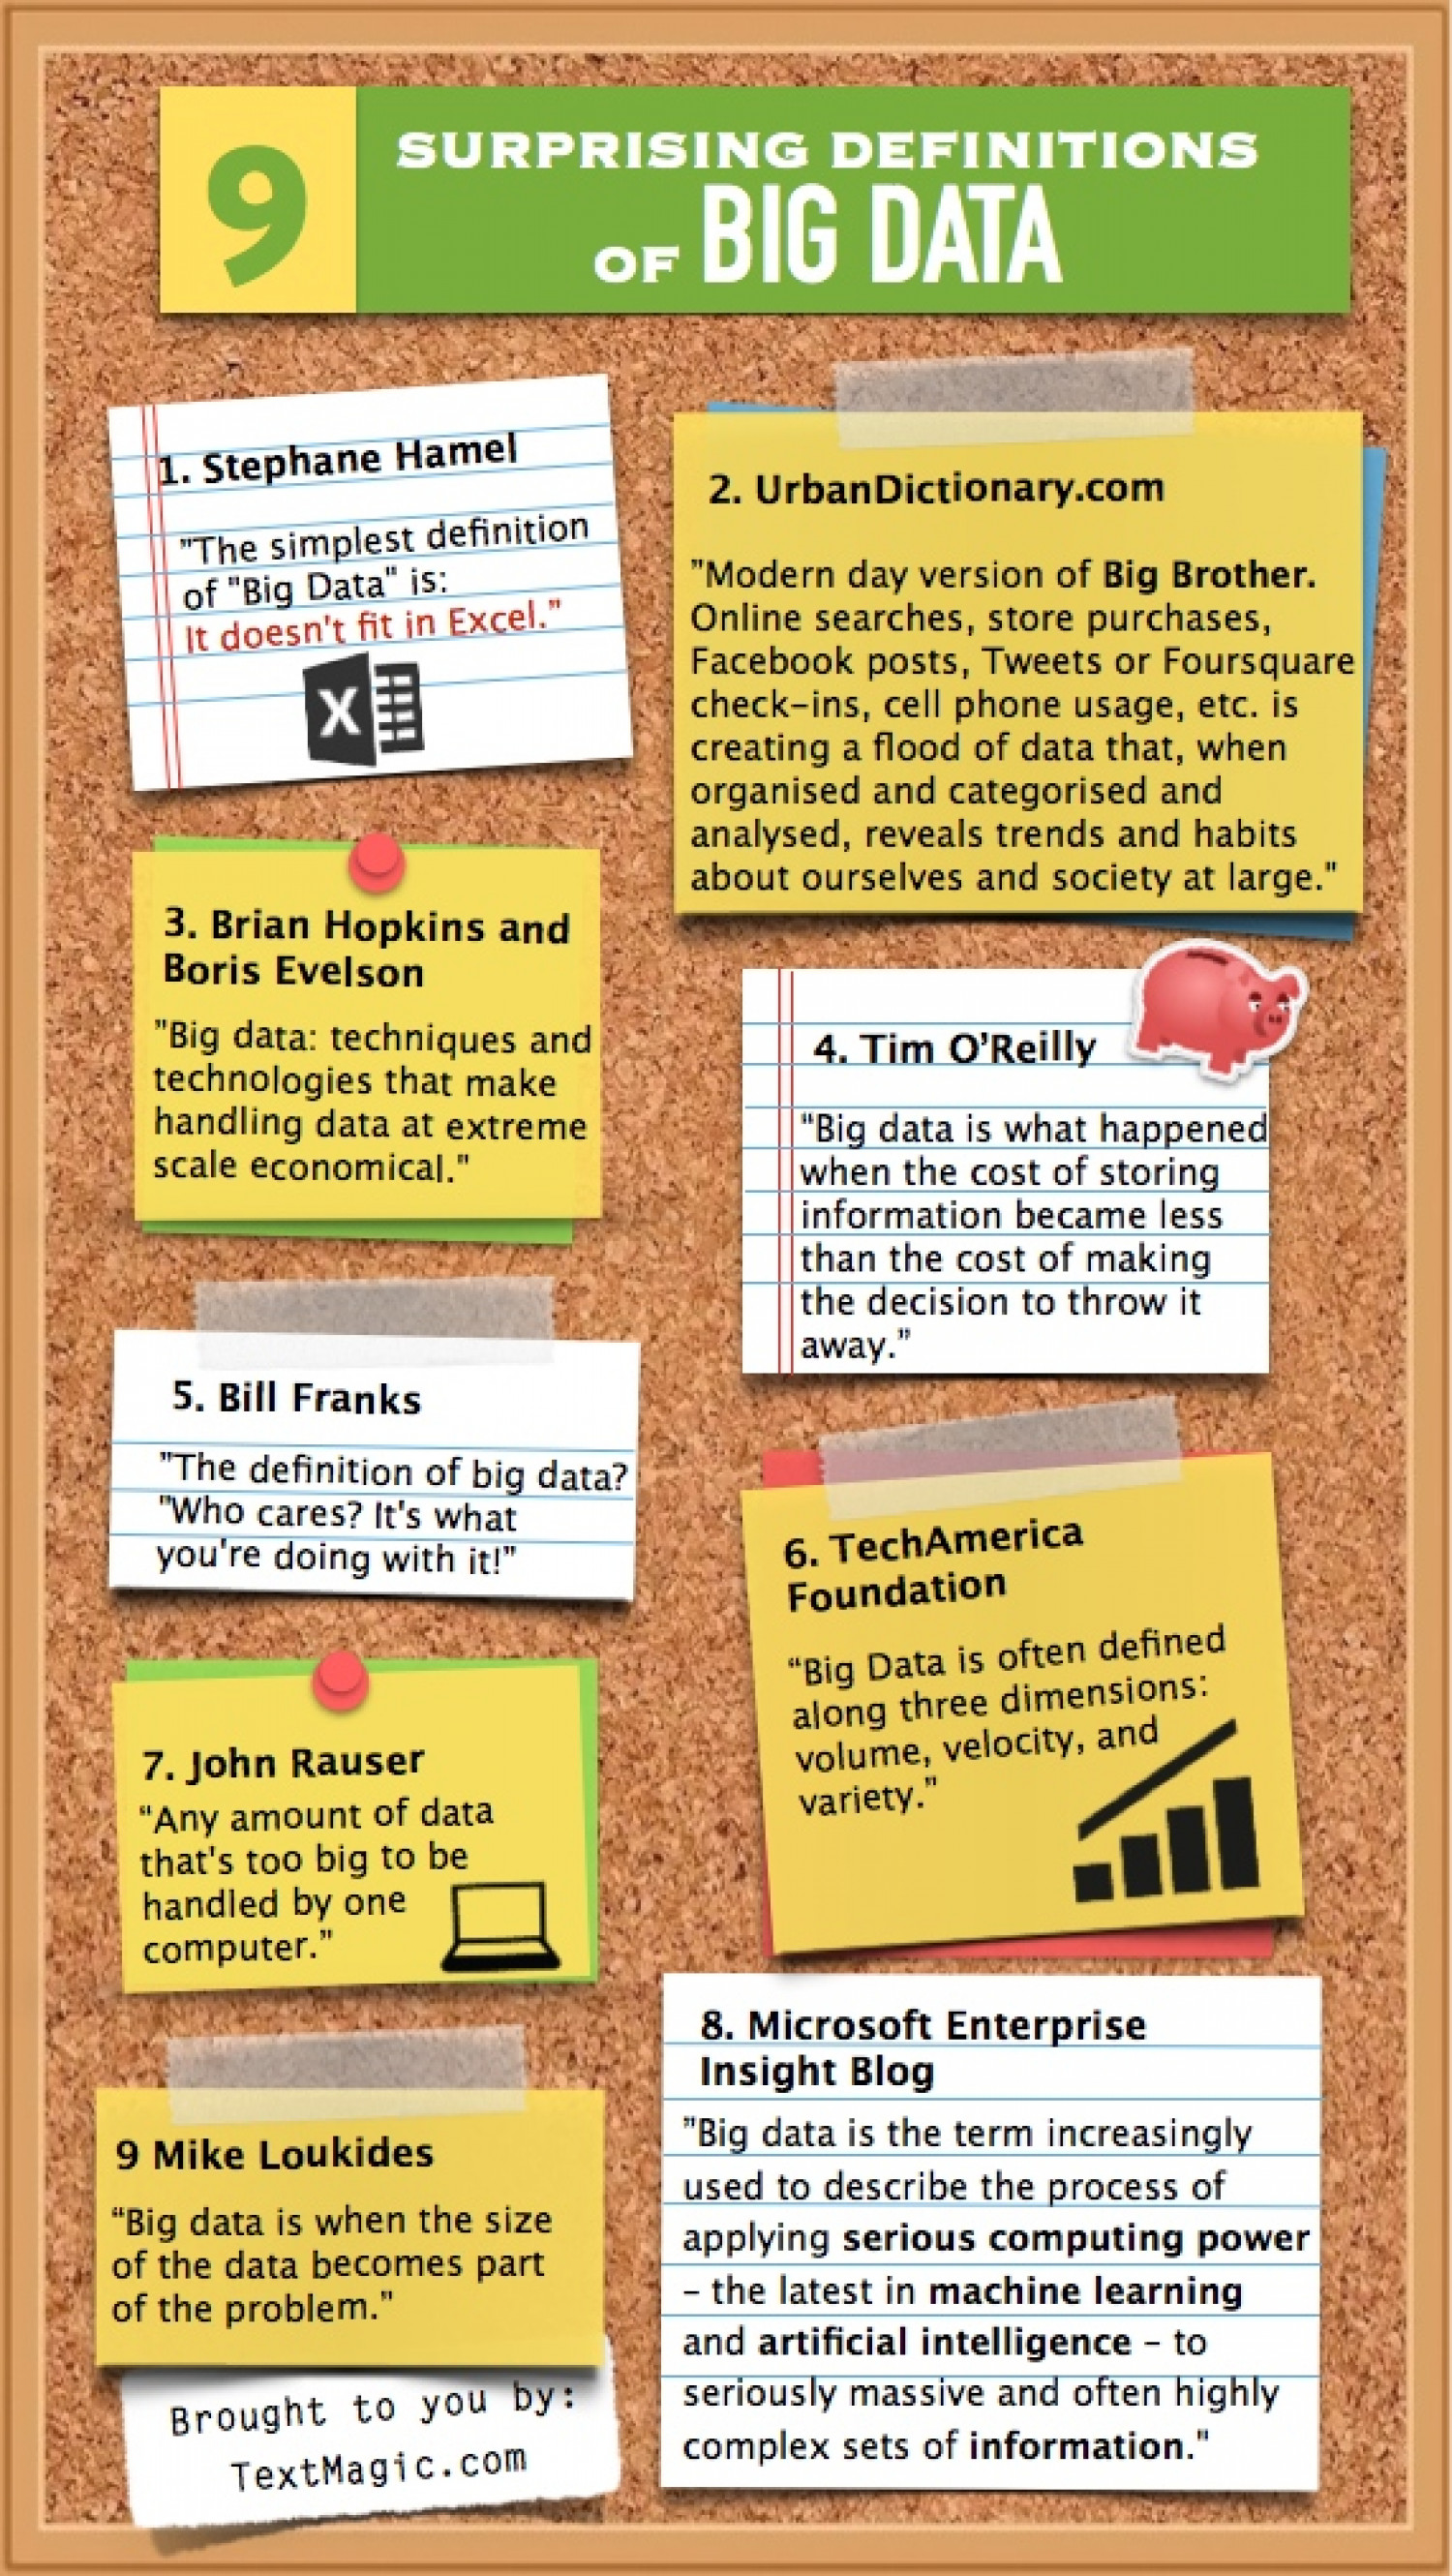 9 Surprising Definitions of Big Data Infographic